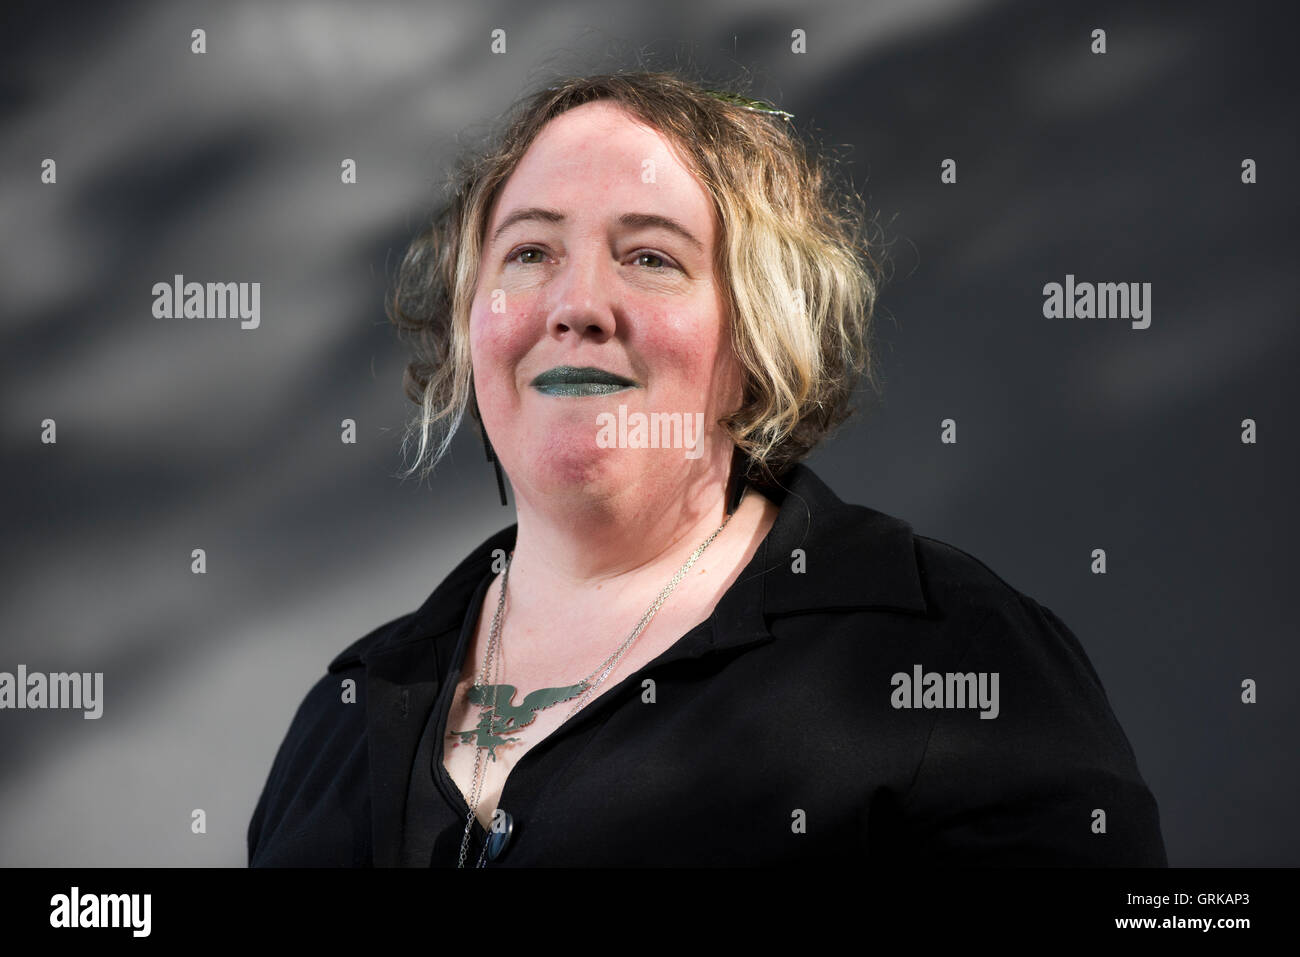 American editor and author of short stories Kelly Link. - Stock Image